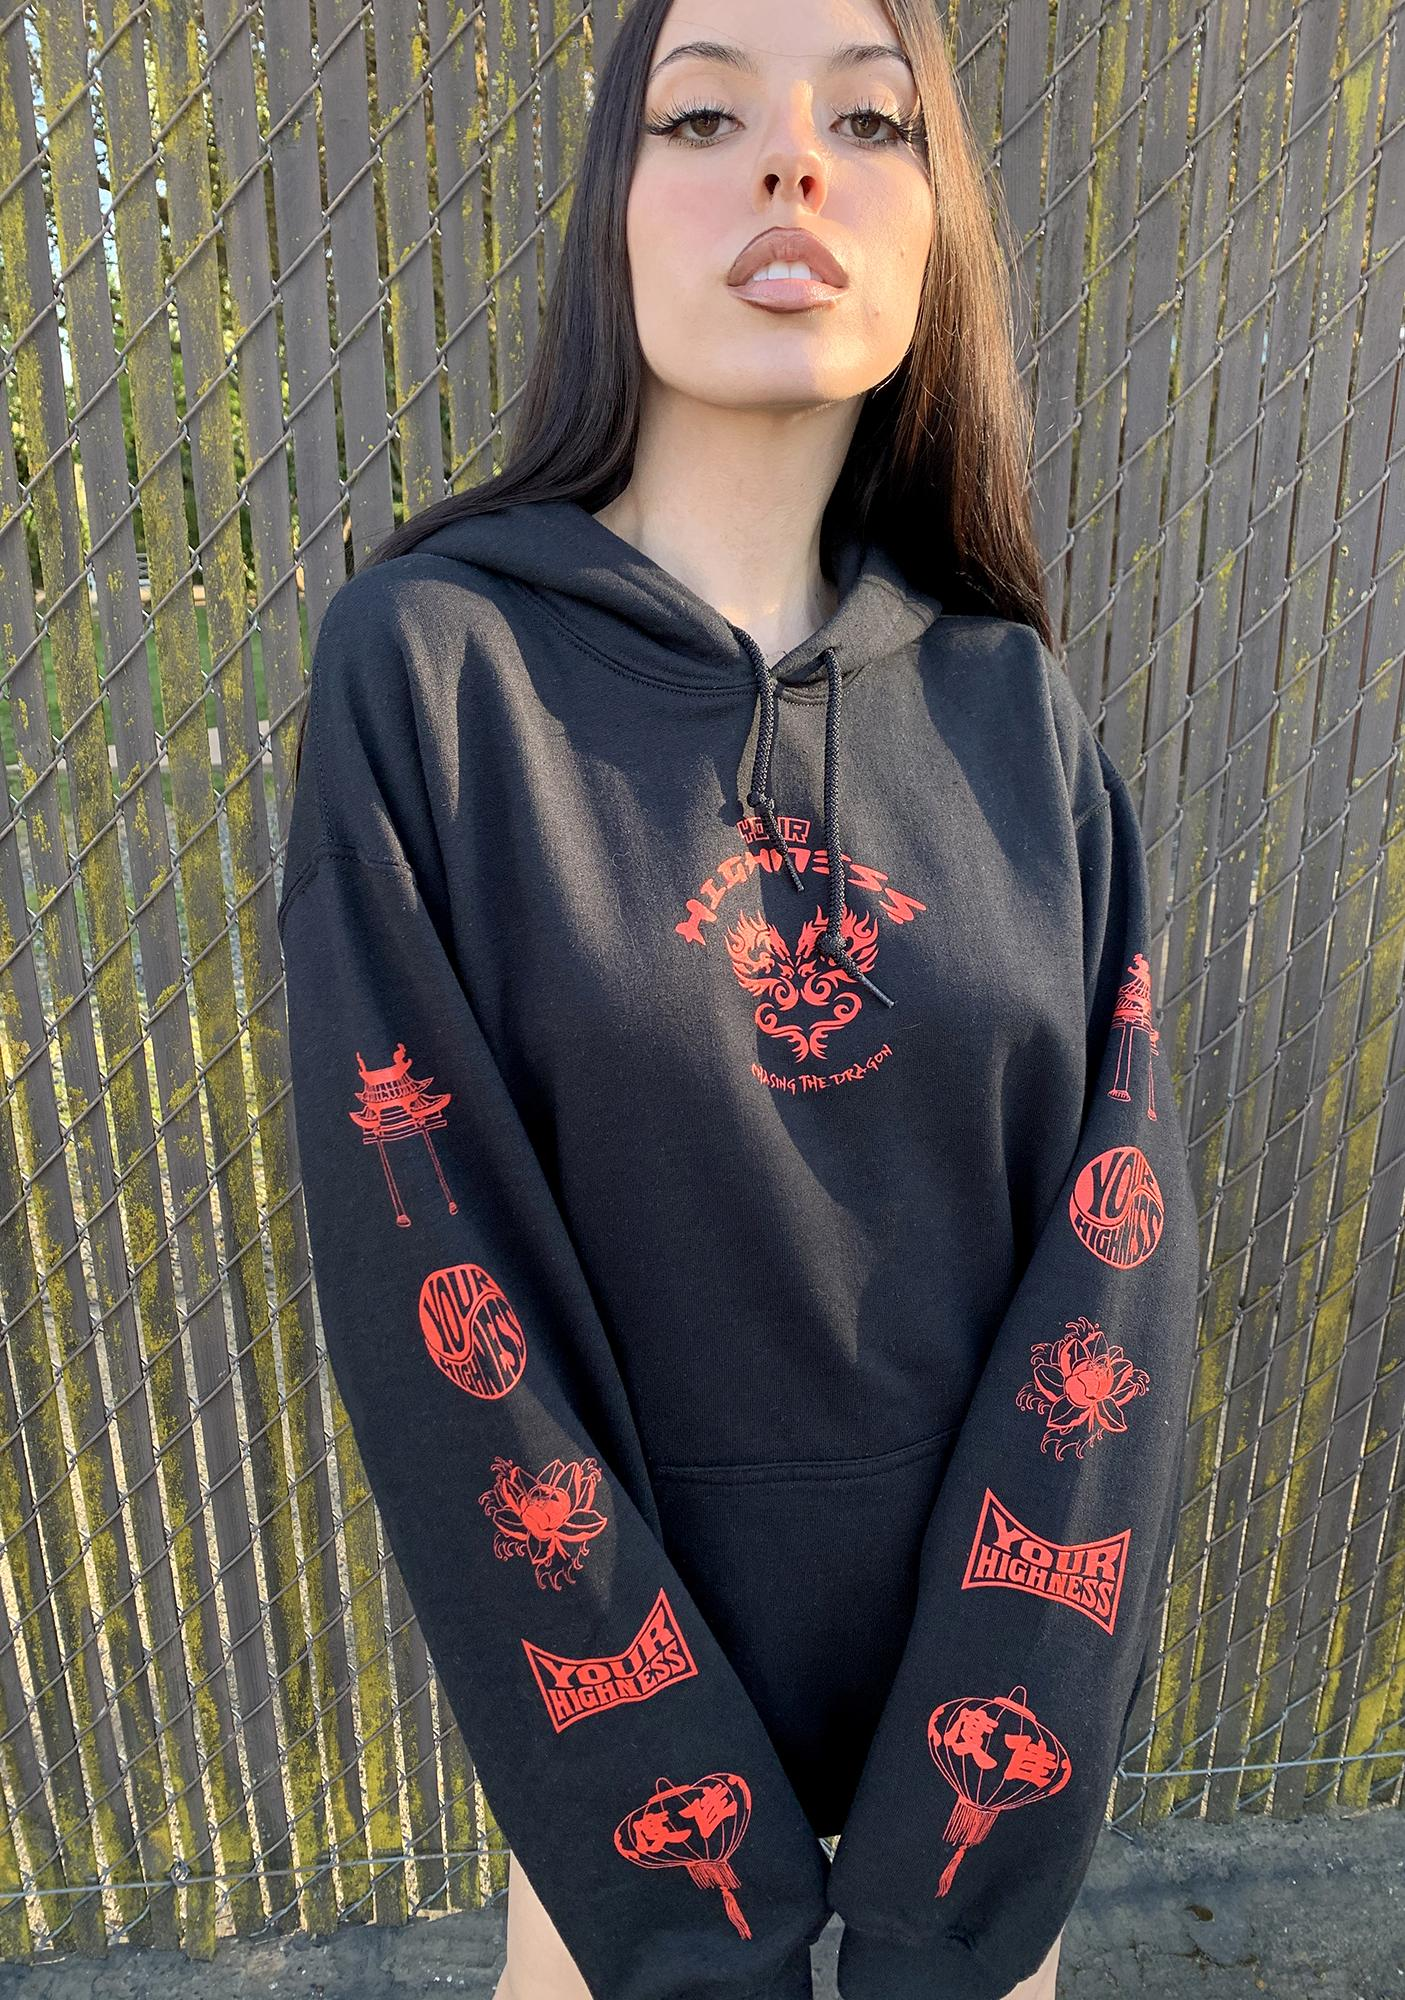 Your Highness Chasing The Dragon Graphic Hoodie